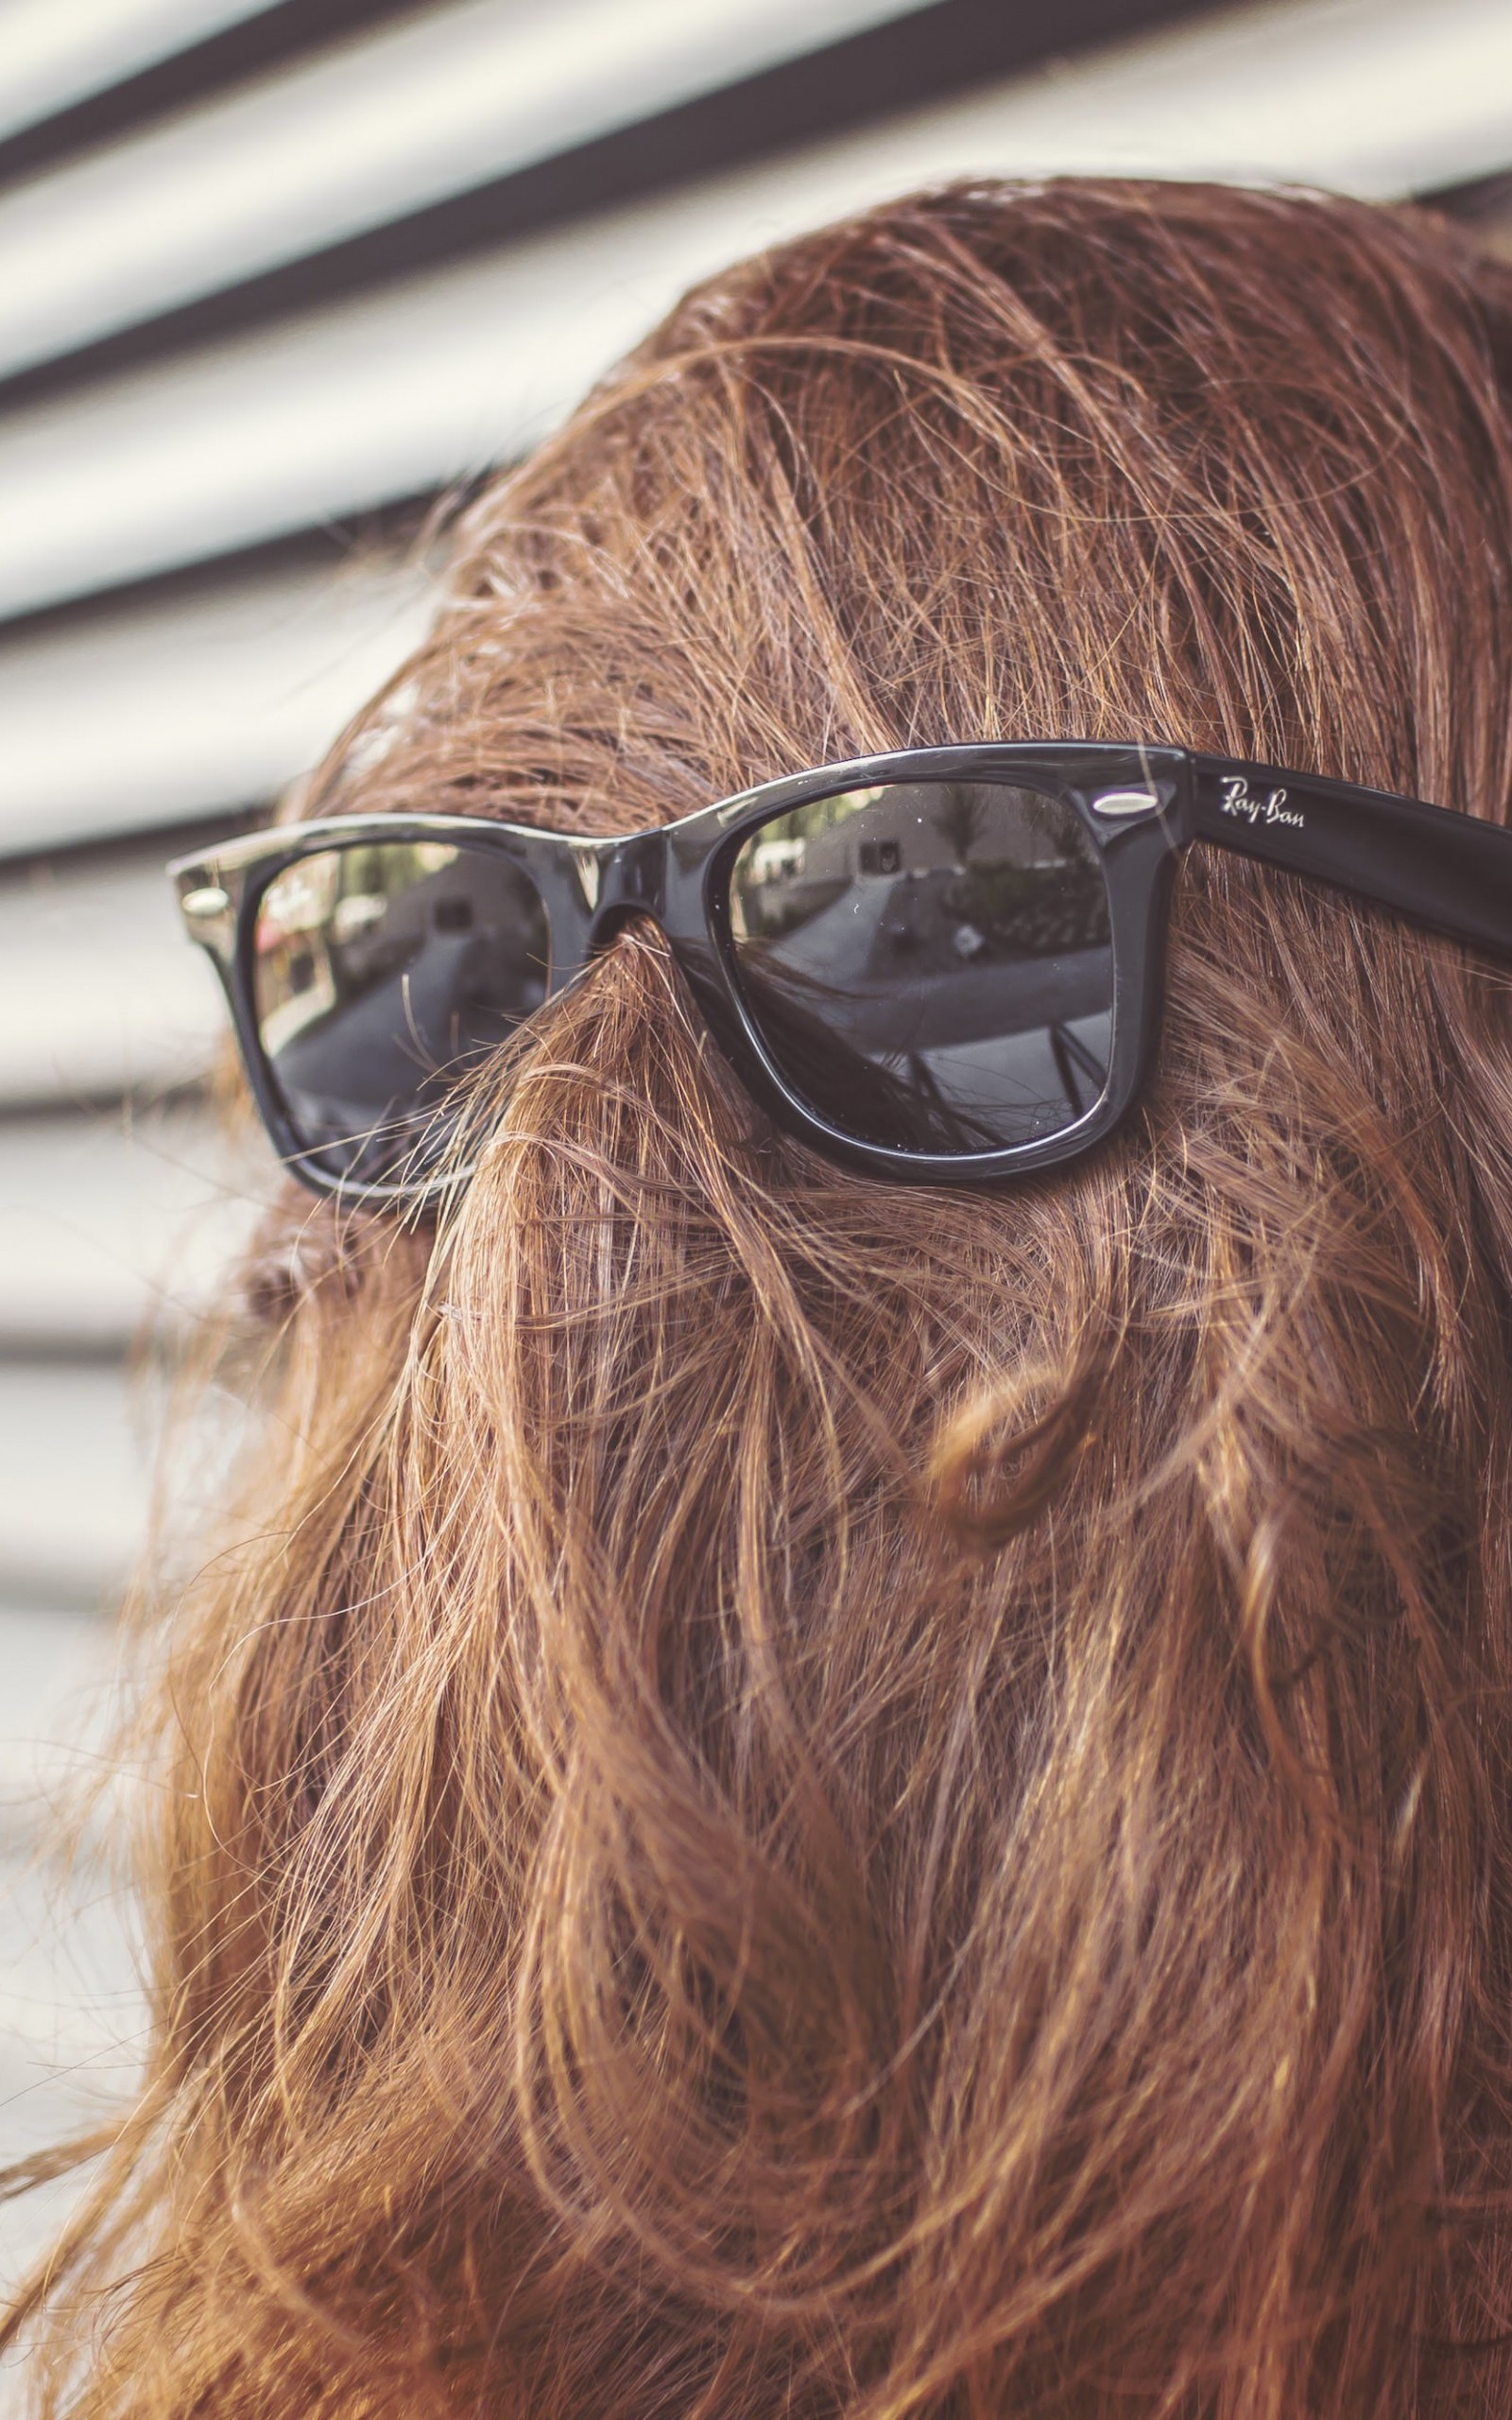 Chewbacca Girl Wallpaper for Amazon Kindle Fire HDX 8.9